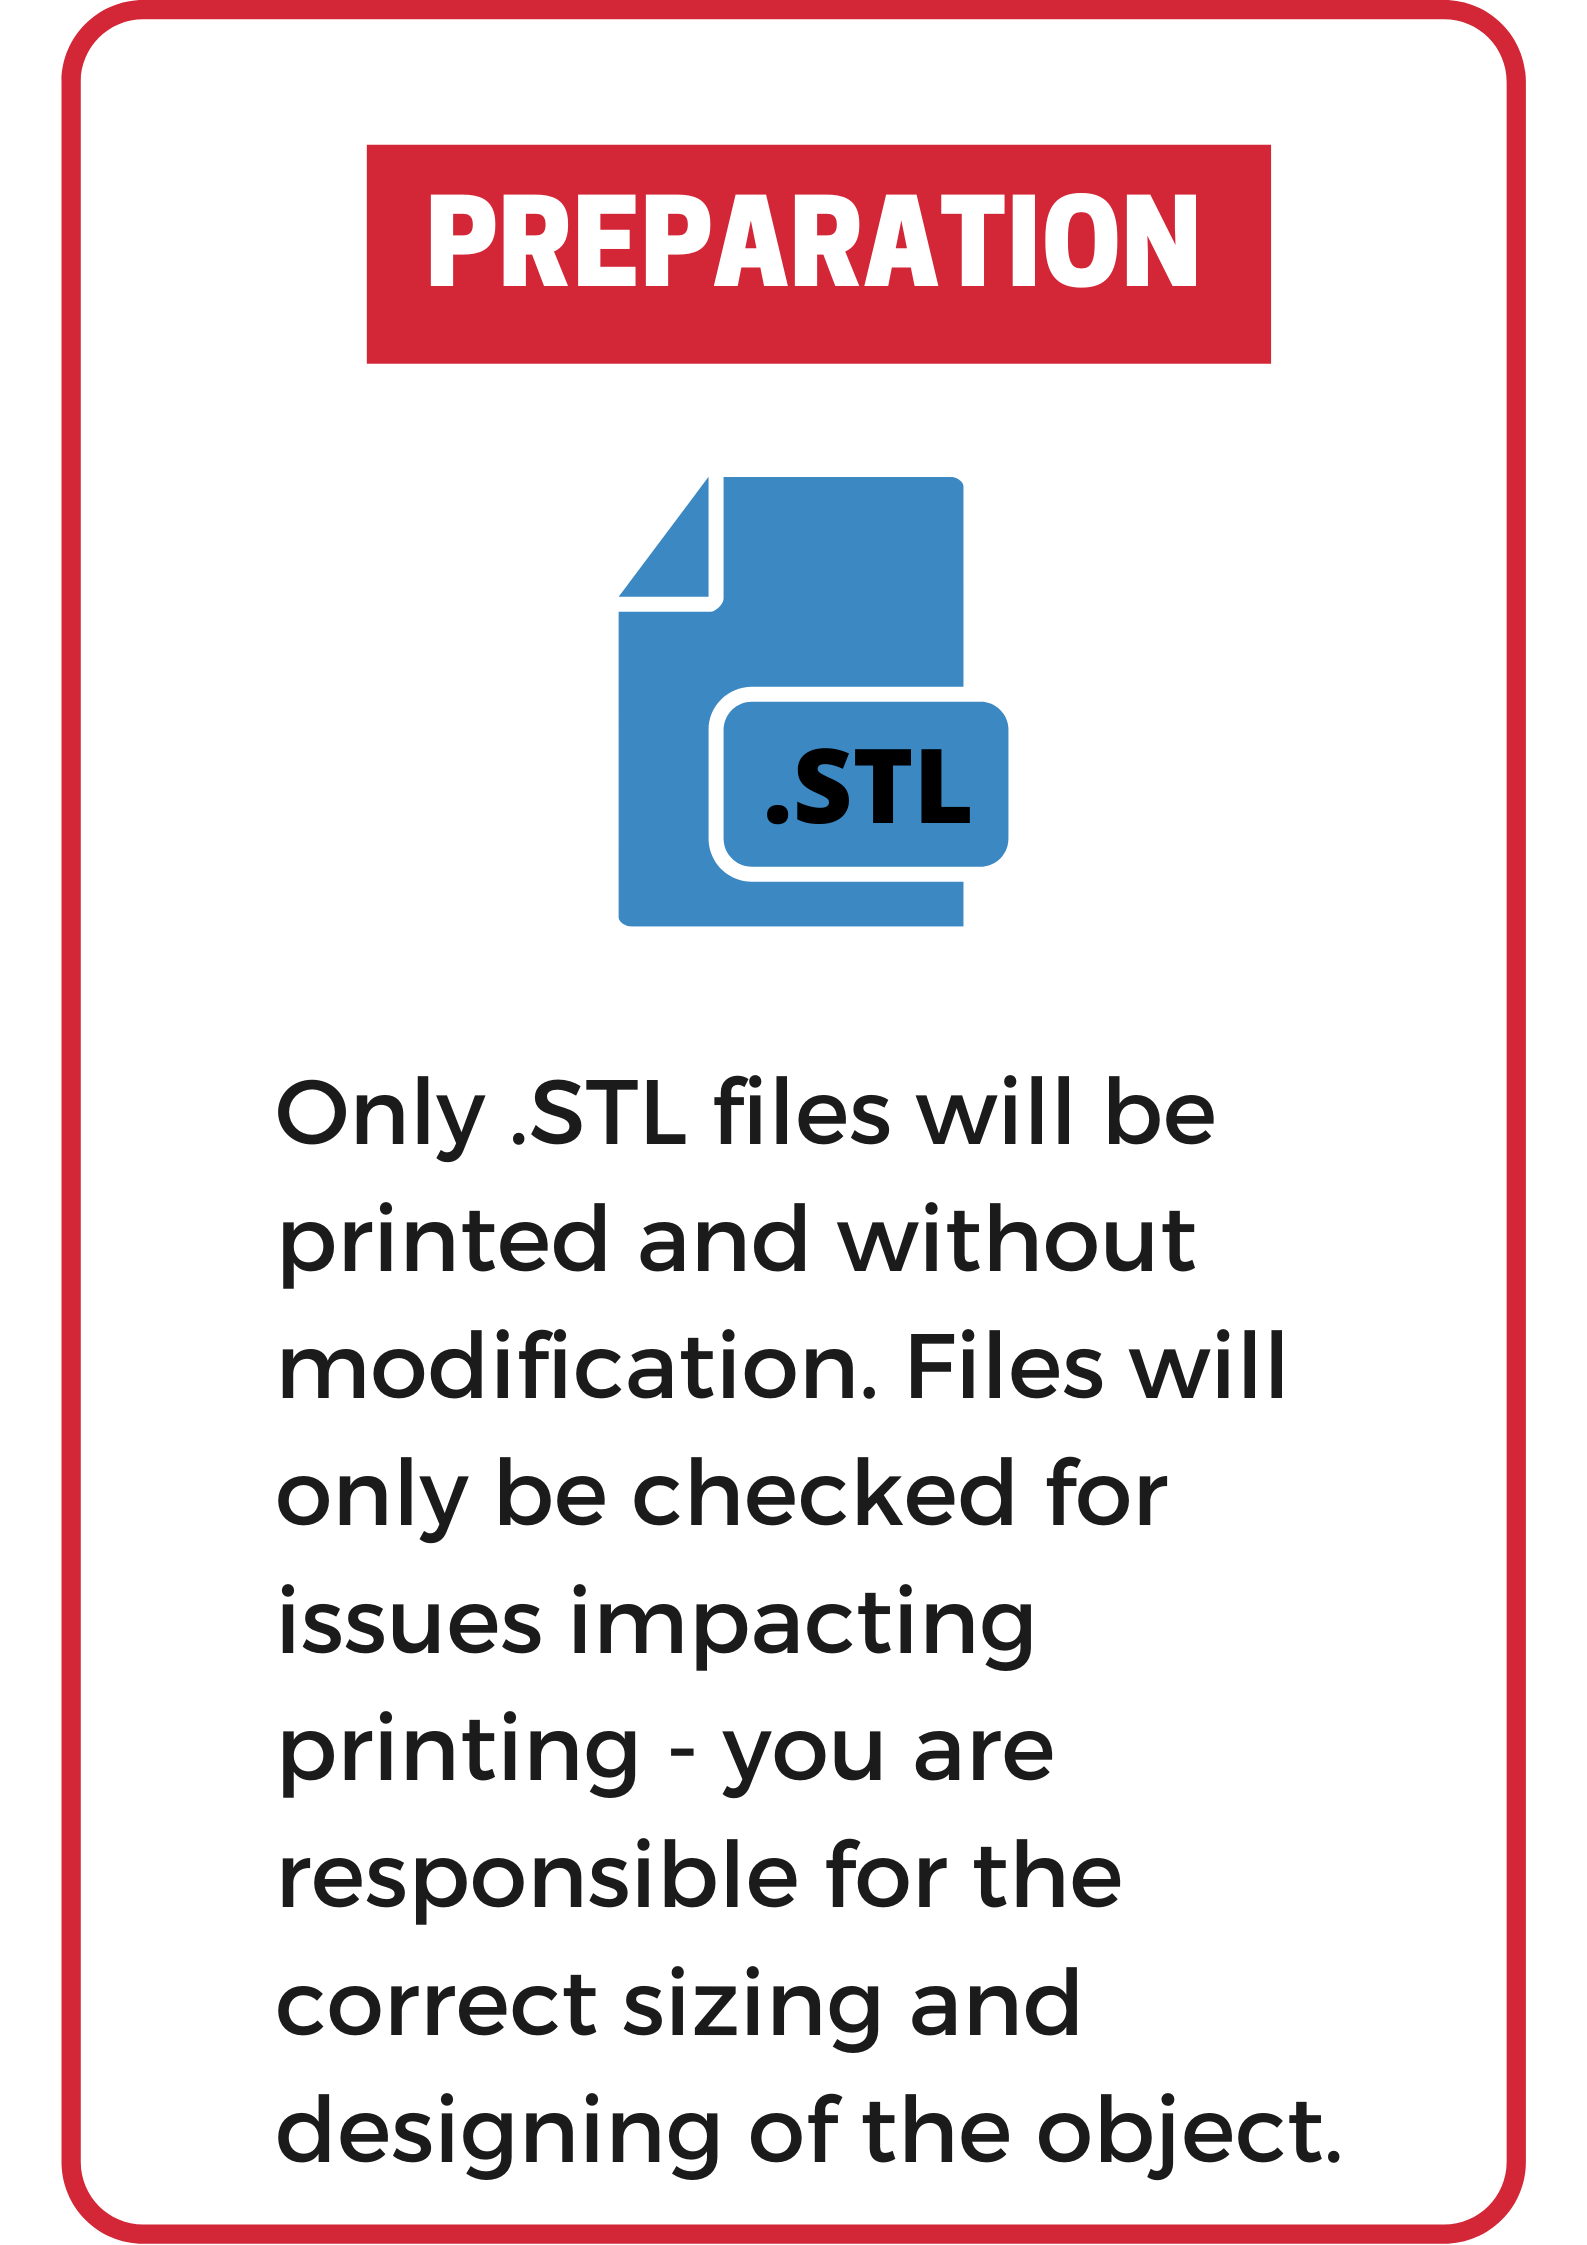 3-D Printing Service: Only .STL files will be printed and without modification.